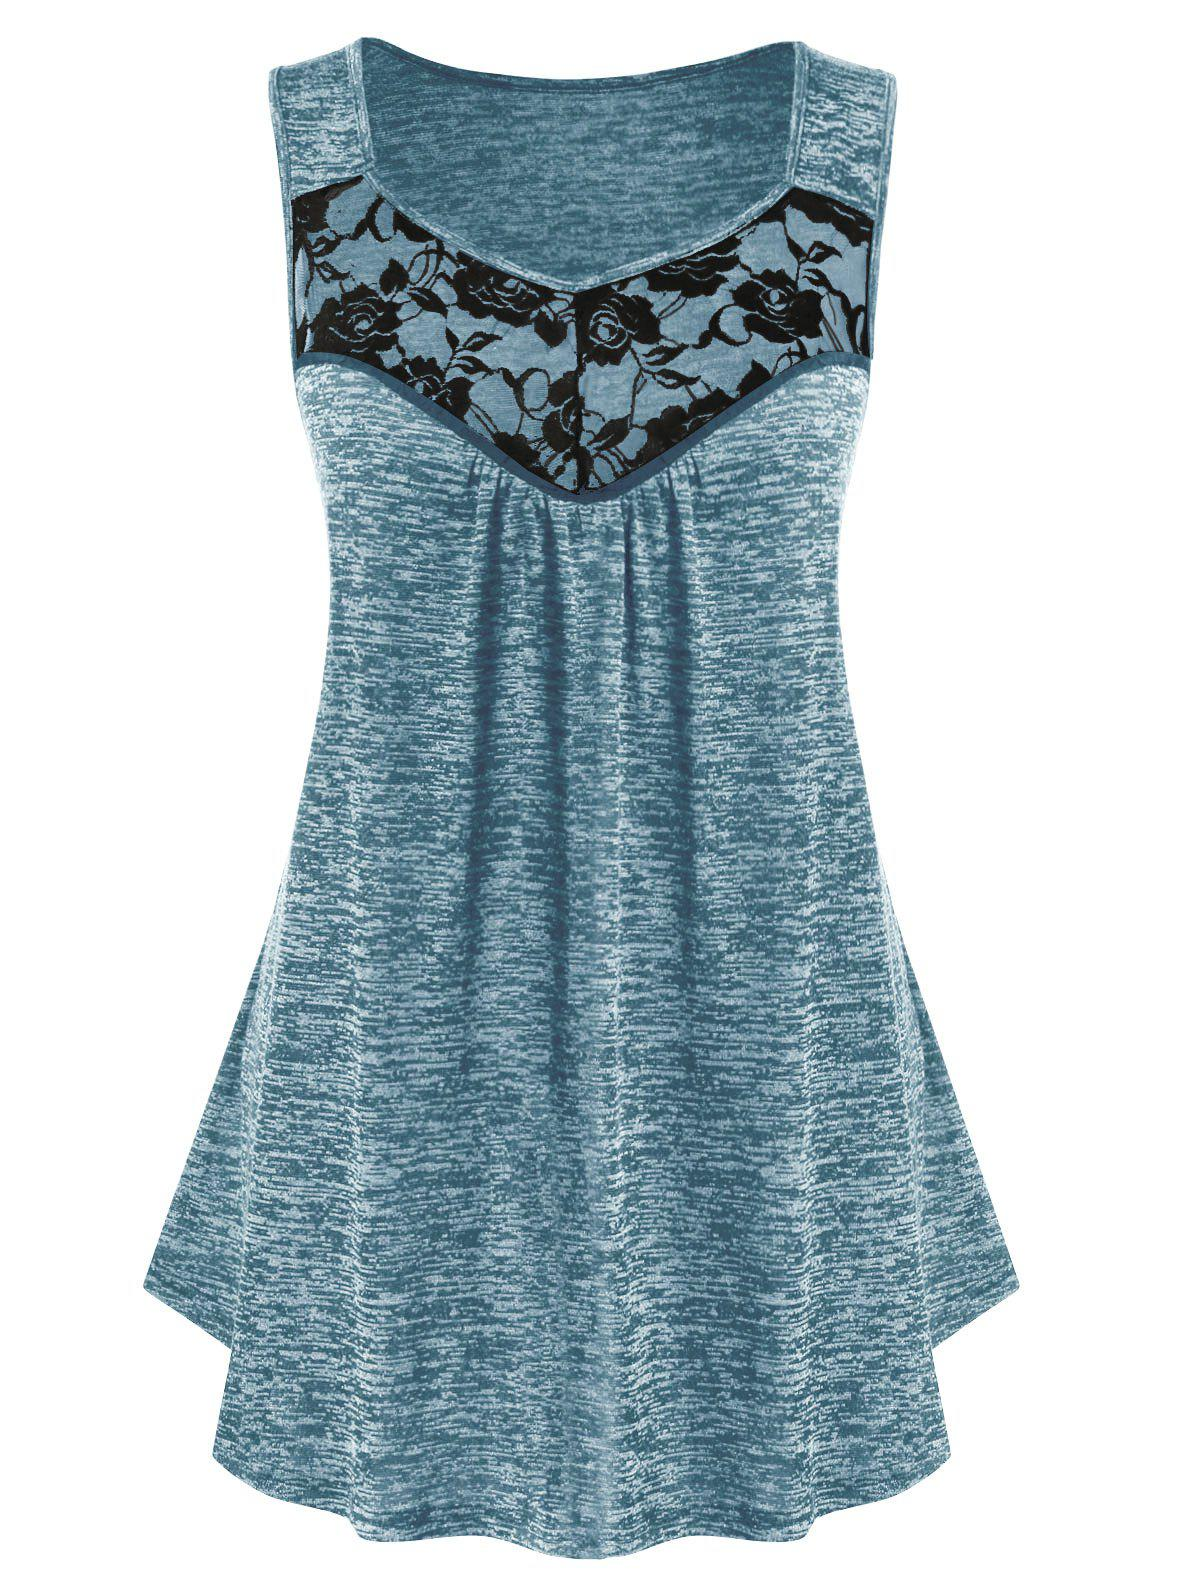 Plus Size Lace Insert Sweetheart Collar Marled Tank Top - BLUE GRAY 5X